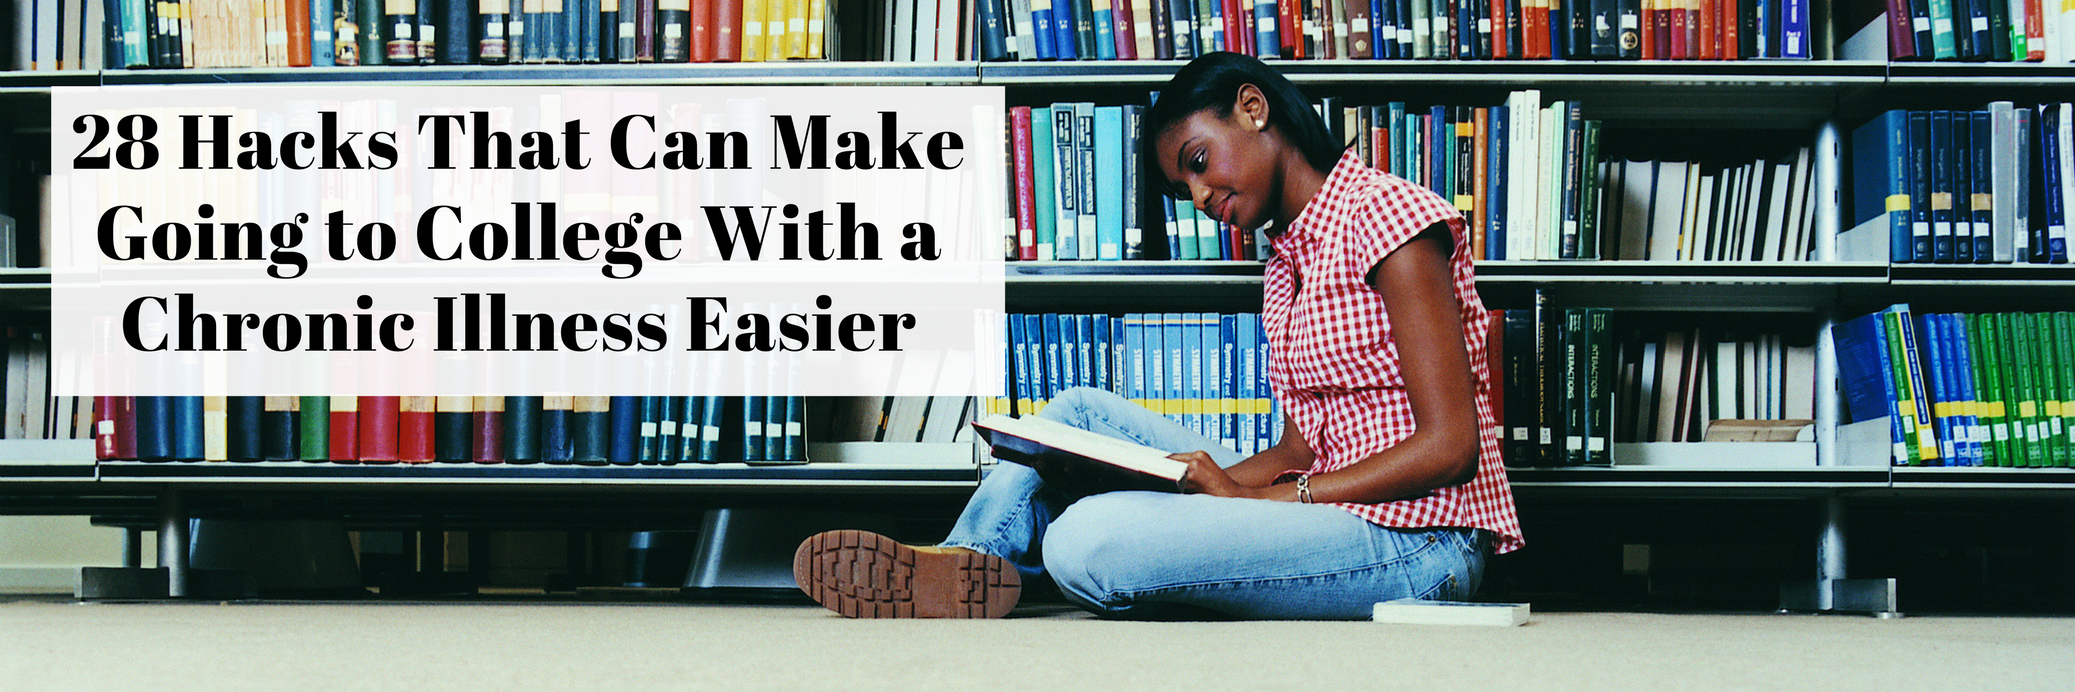 28 Hacks That Can Make Going to College With a Chronic Illness Easier